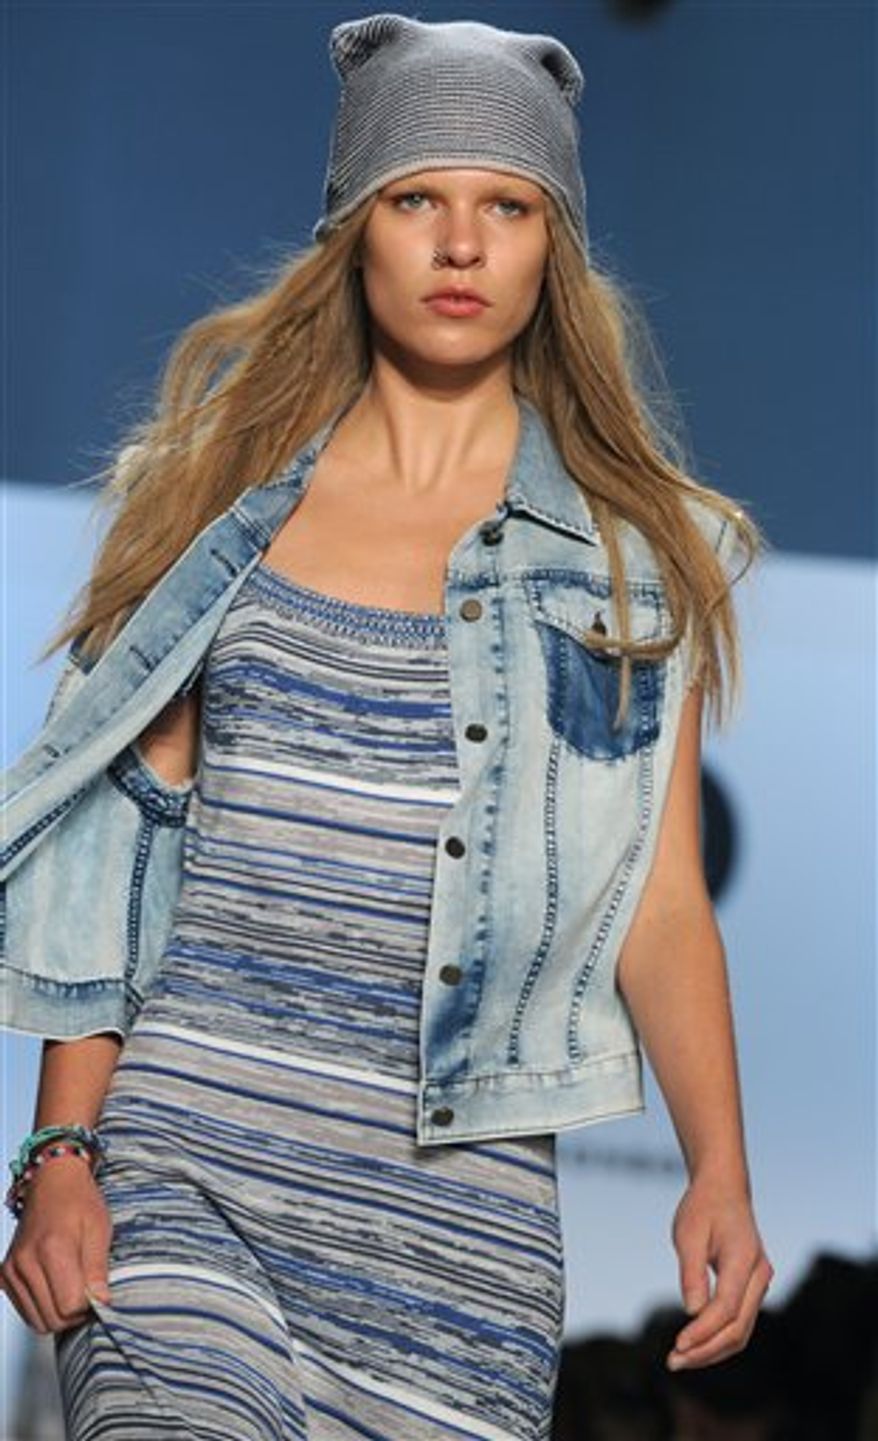 The Charlotte Ronson spring 2011 collection is shown during Fashion Week in New York, Saturday, Sept. 11, 2010. (AP Photo/Diane Bondareff)